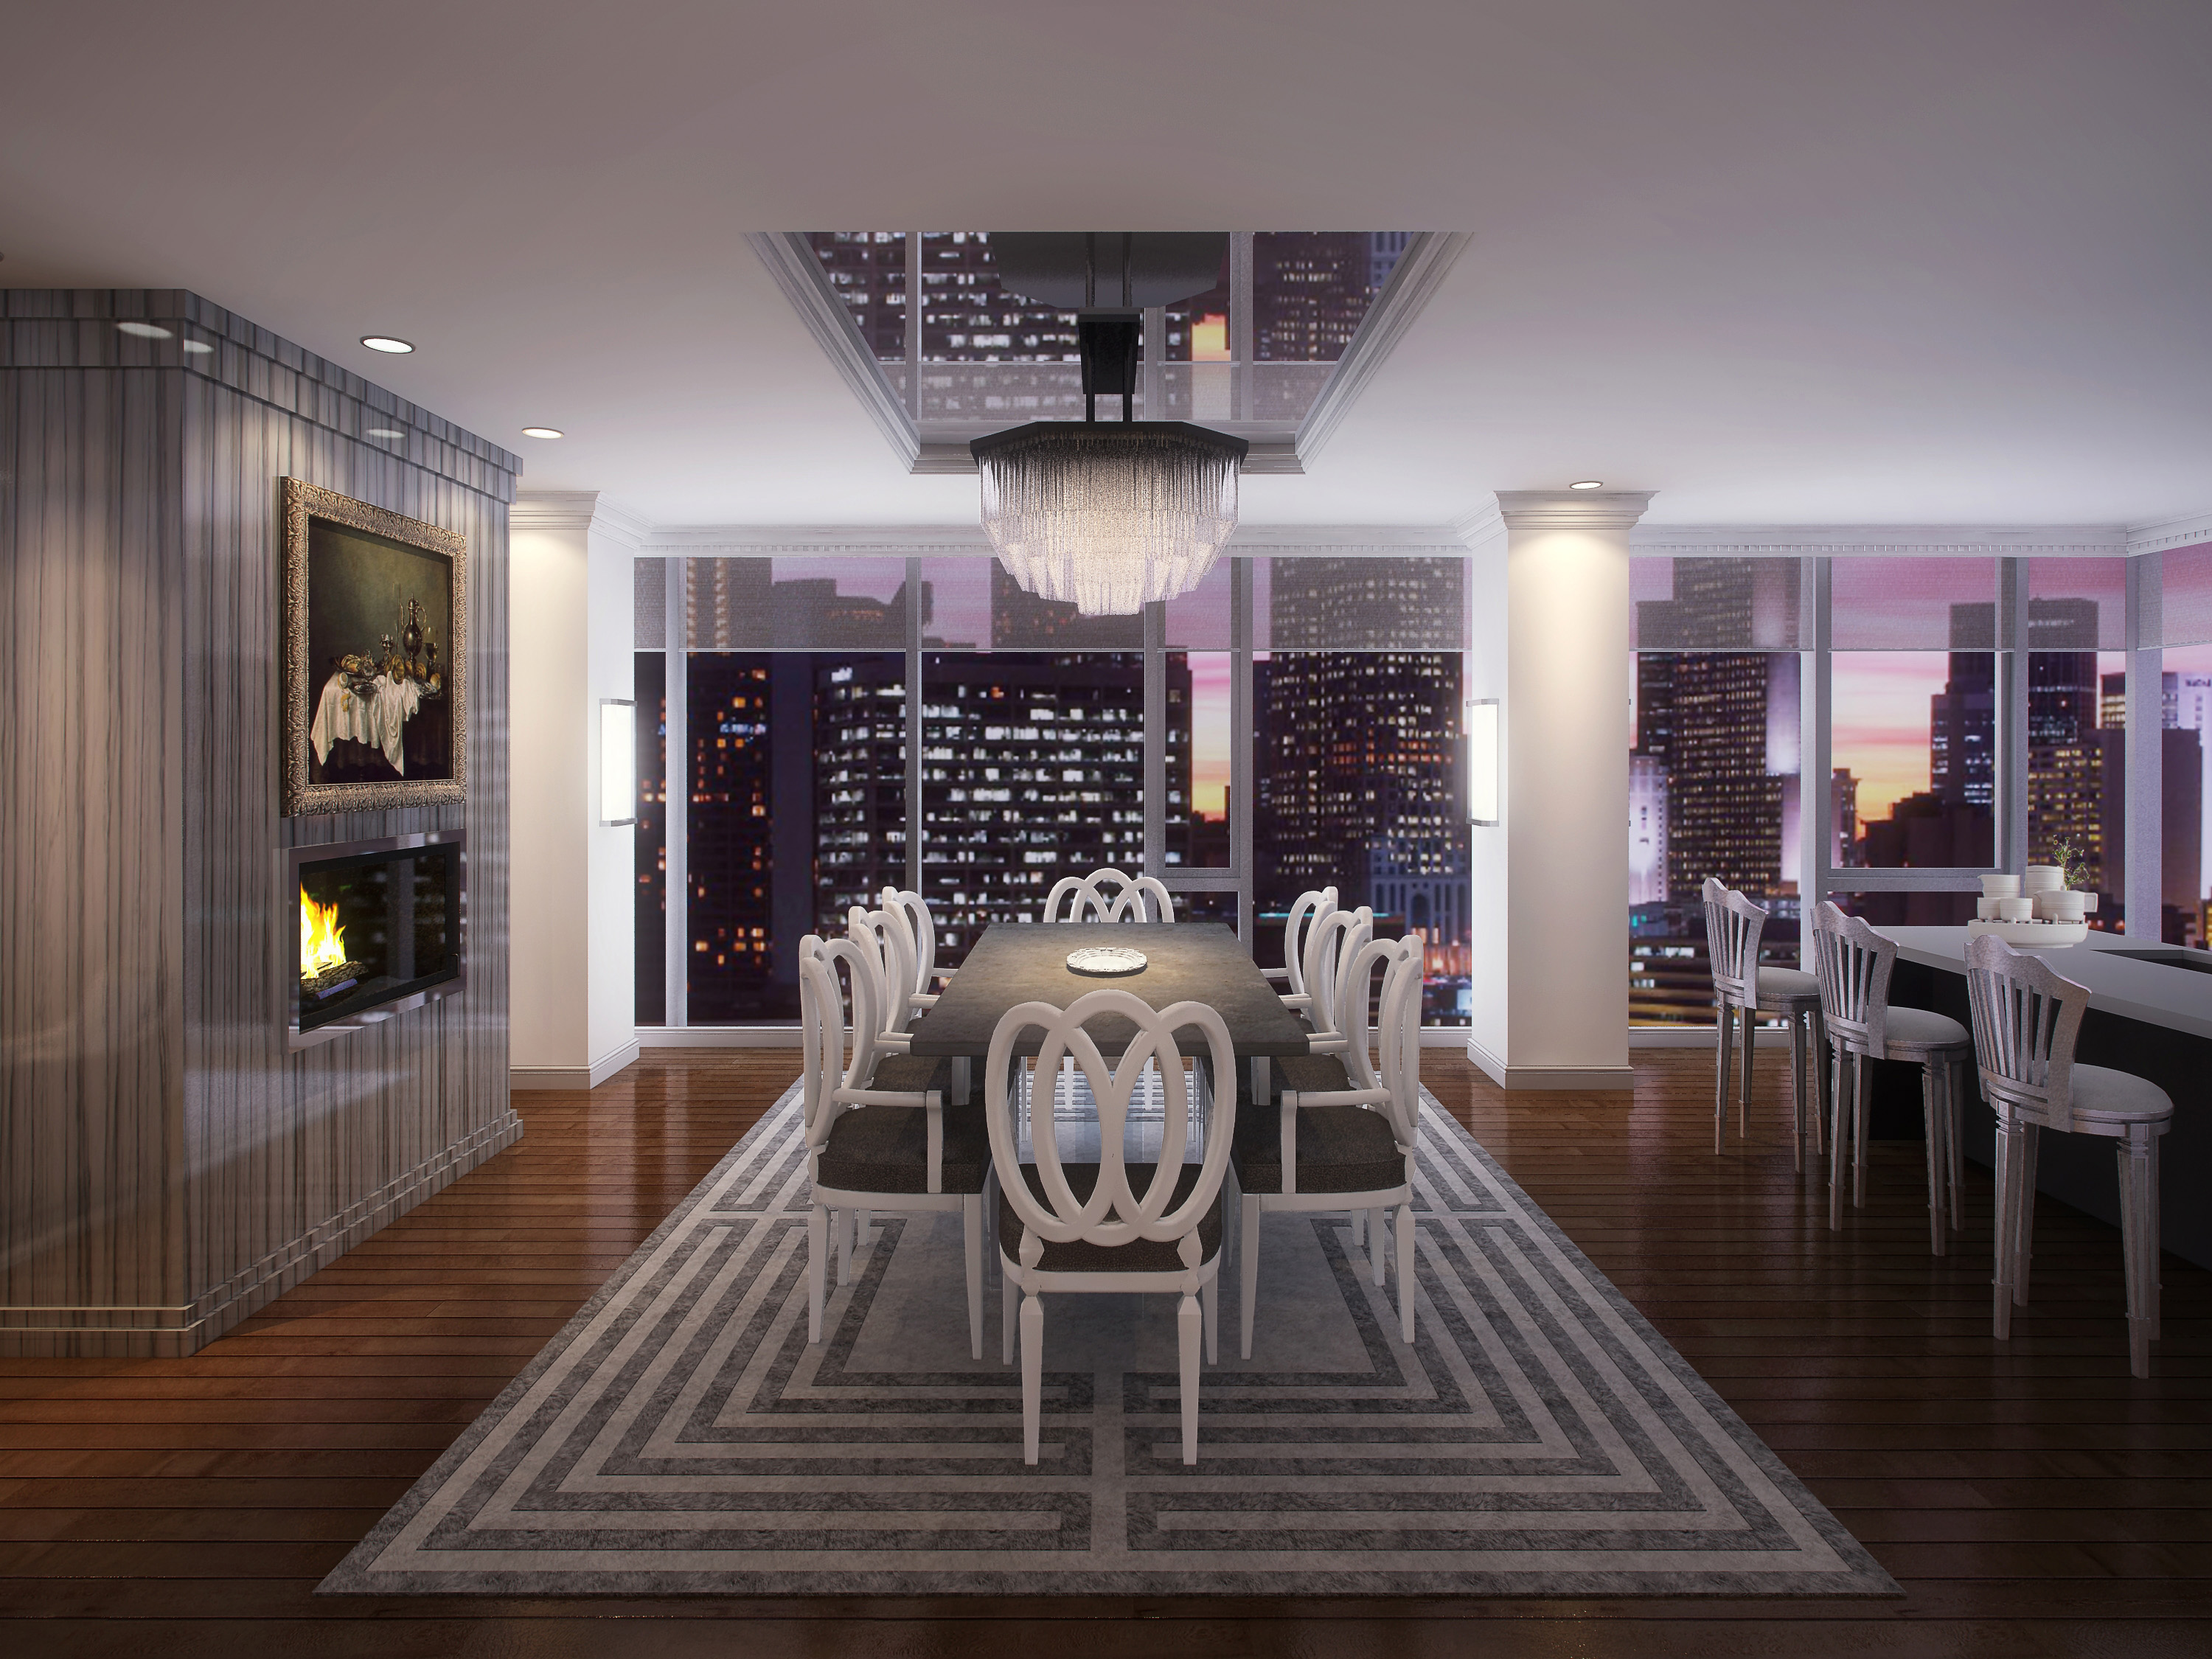 Chicago Luxury - 4 EAST ELM- LAYOUT 2 DINING ROOM - HI-RES